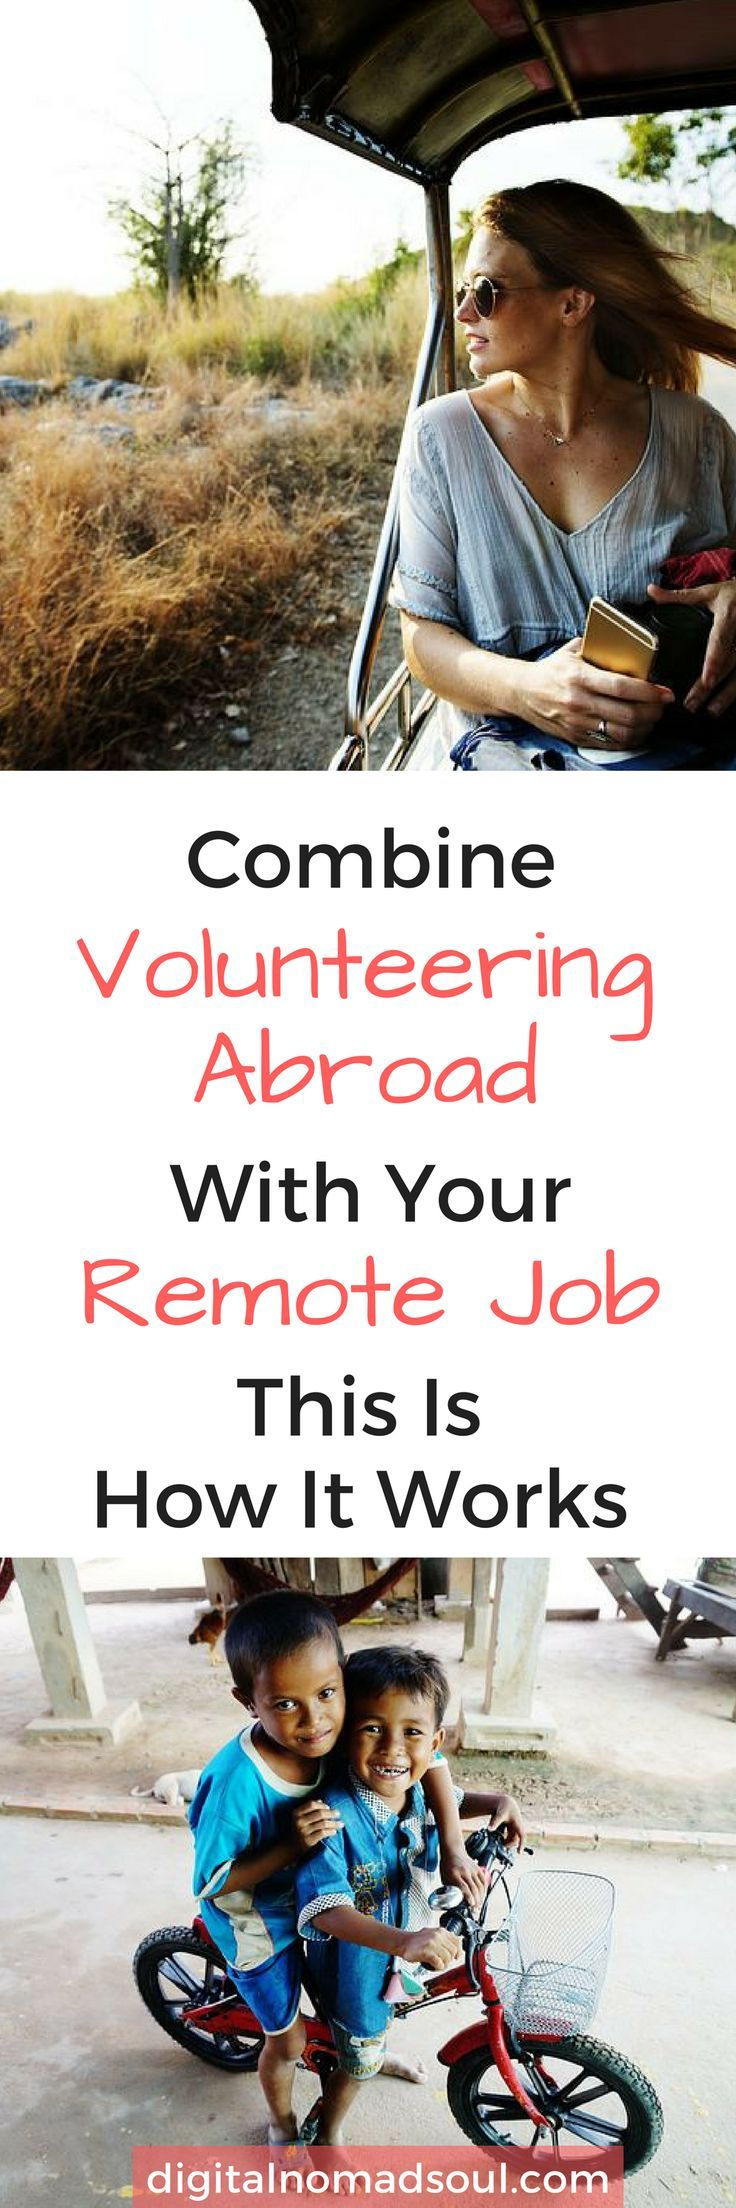 Volunteer Abroad While Working Remotely It's So Easy